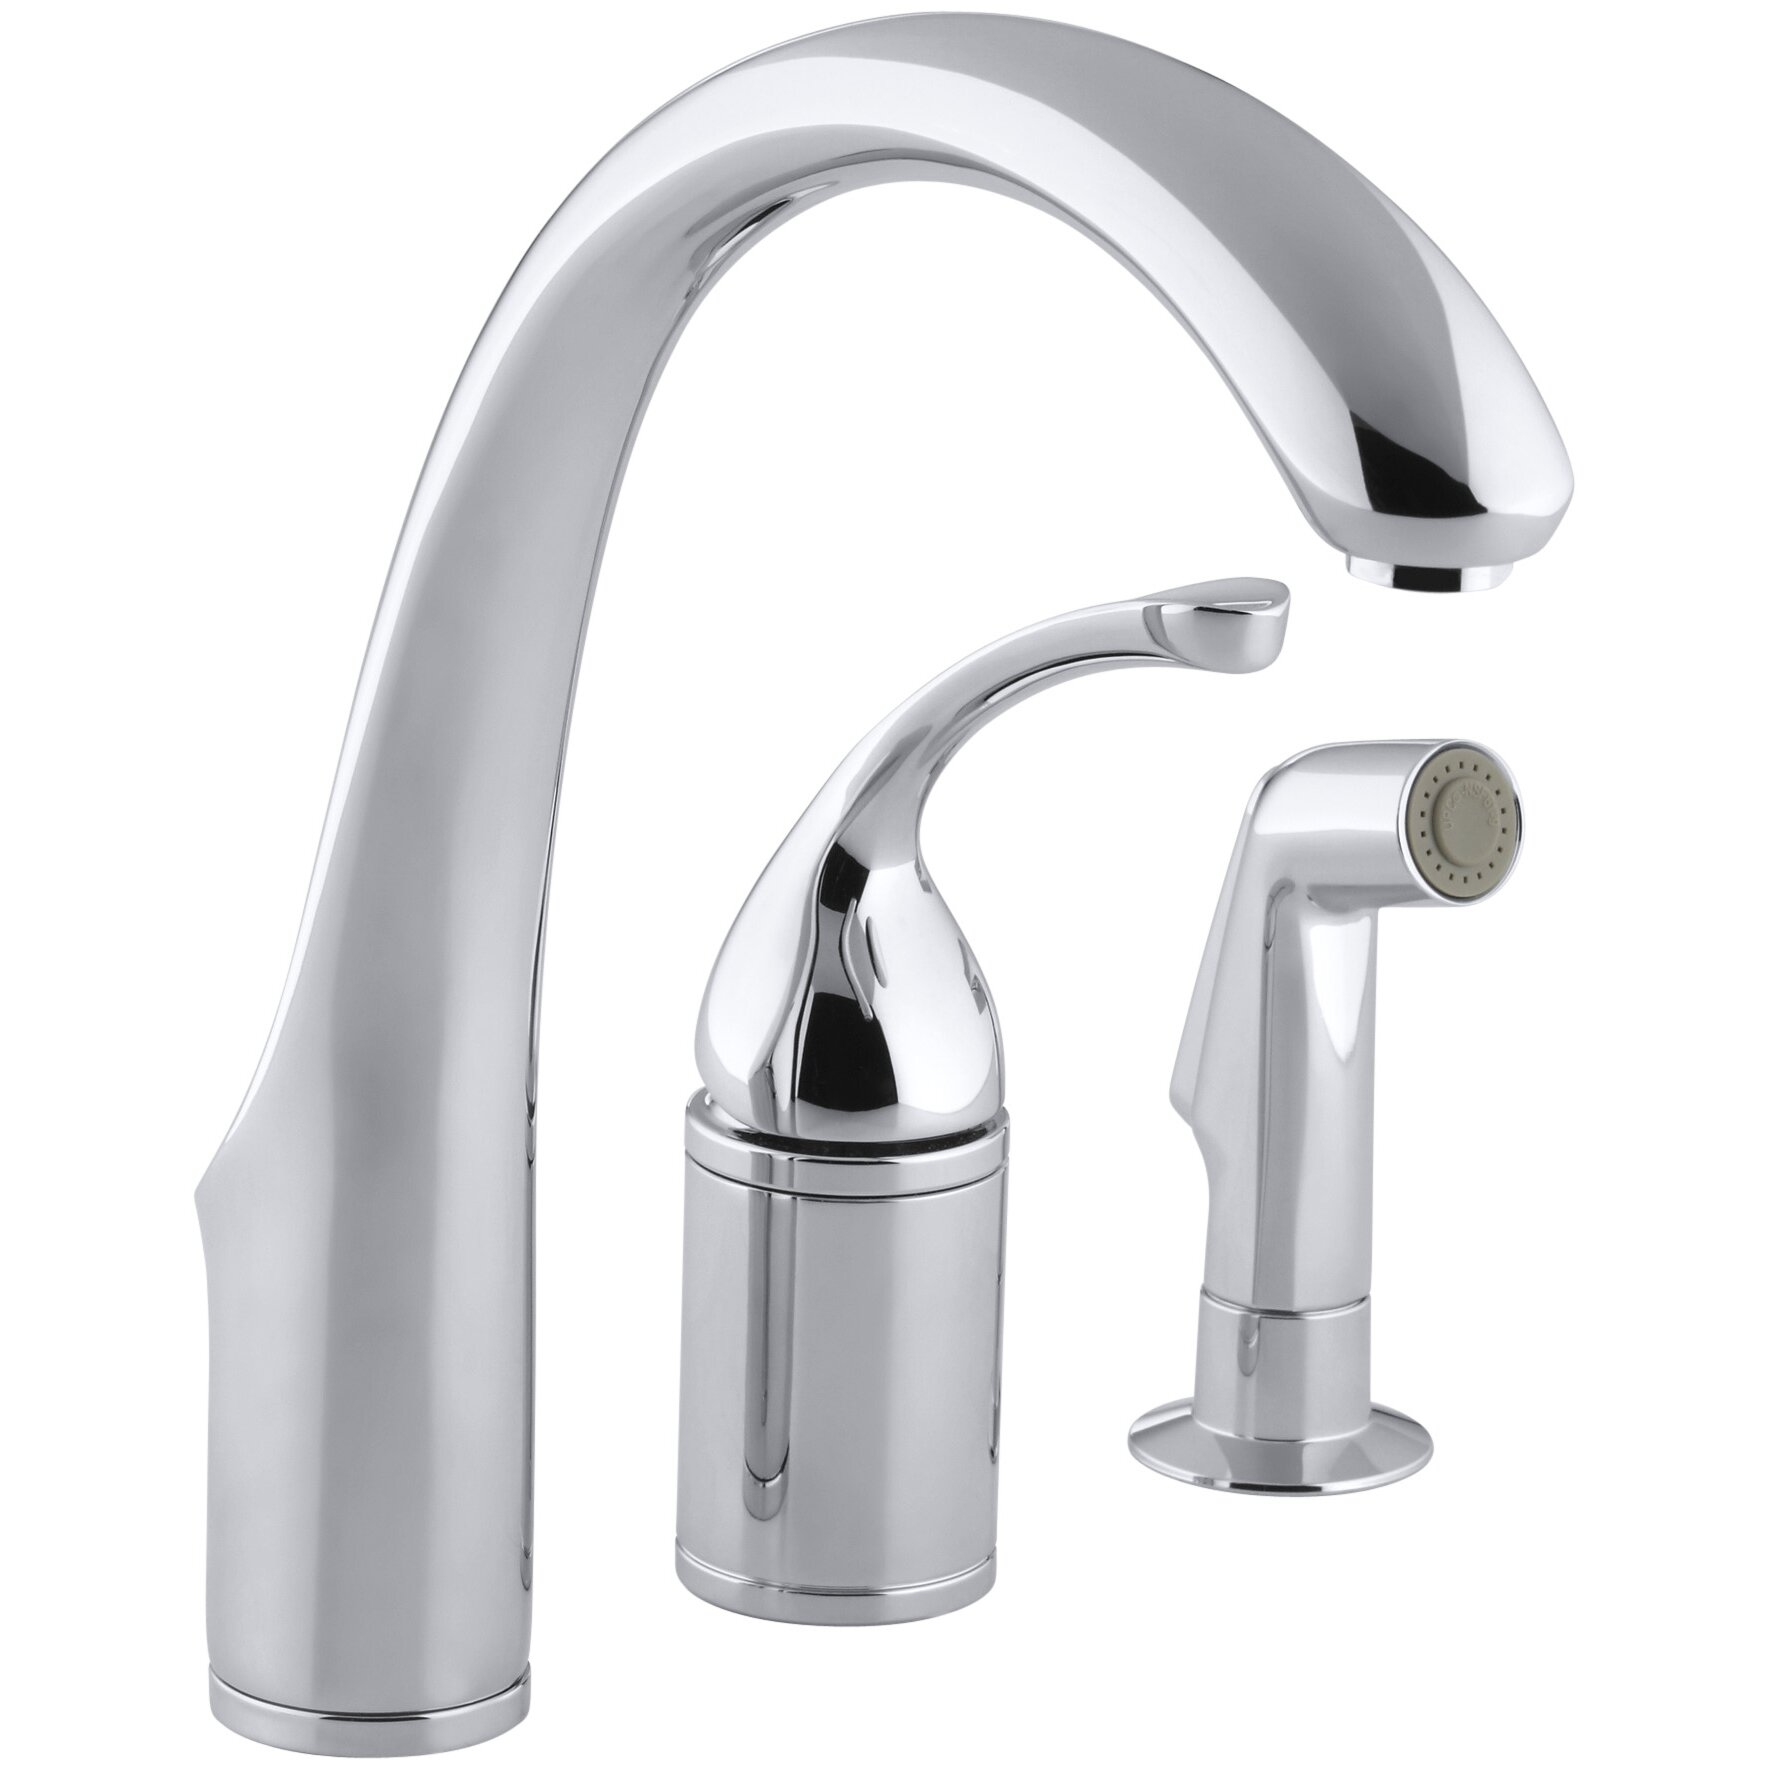 fort 3 hole remote valve kitchen sink faucet with 9 spout with matching finish - Kitchen Sink Sprayer